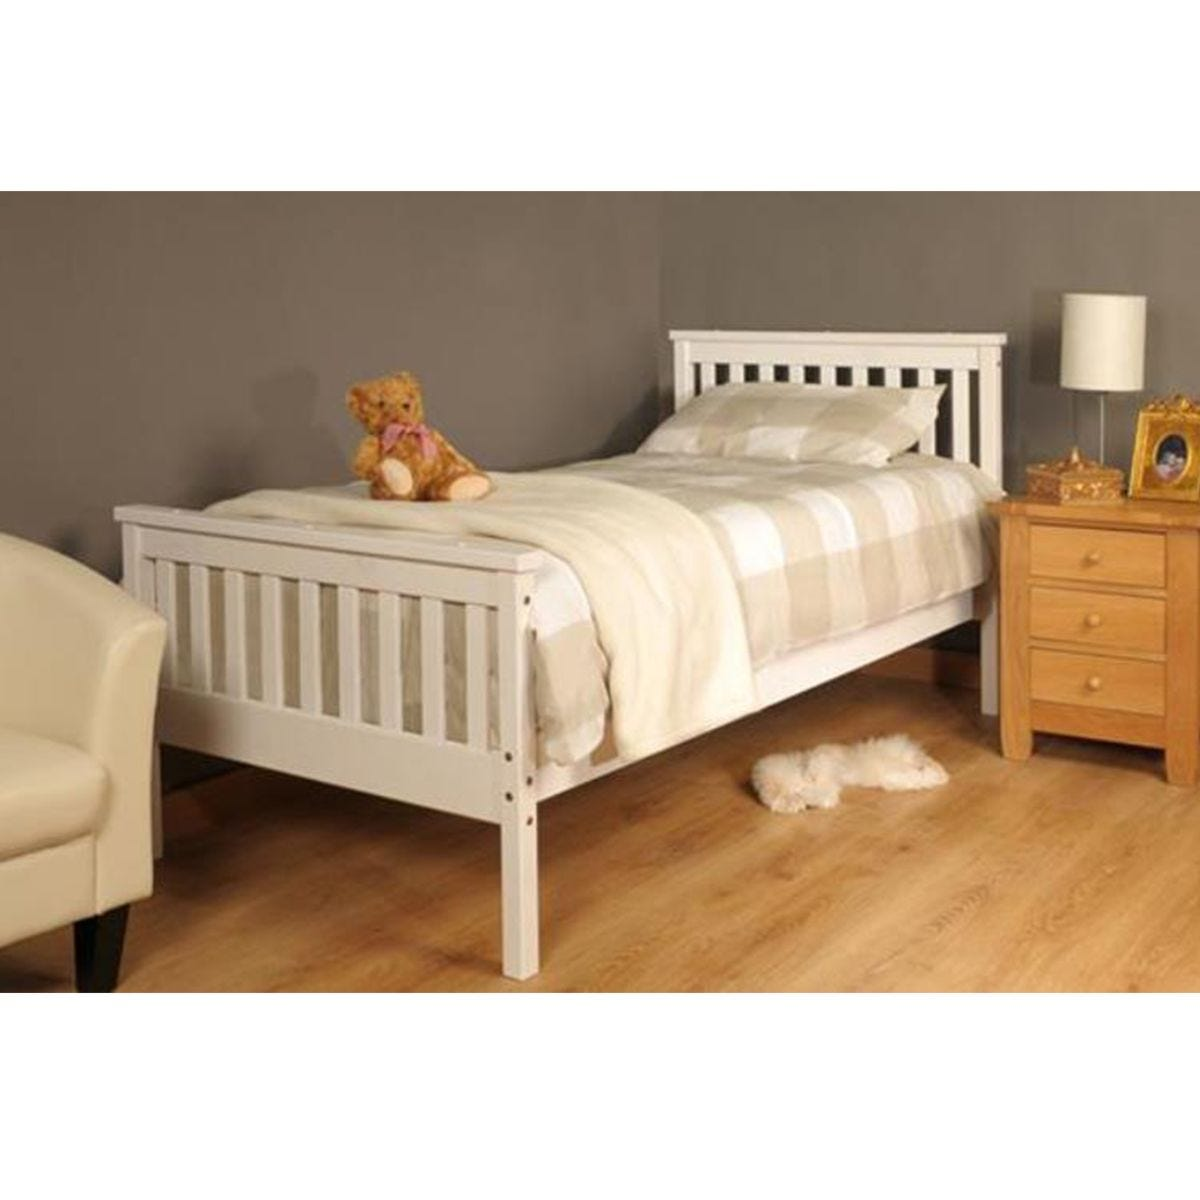 Talsi Double Bed Frame - White